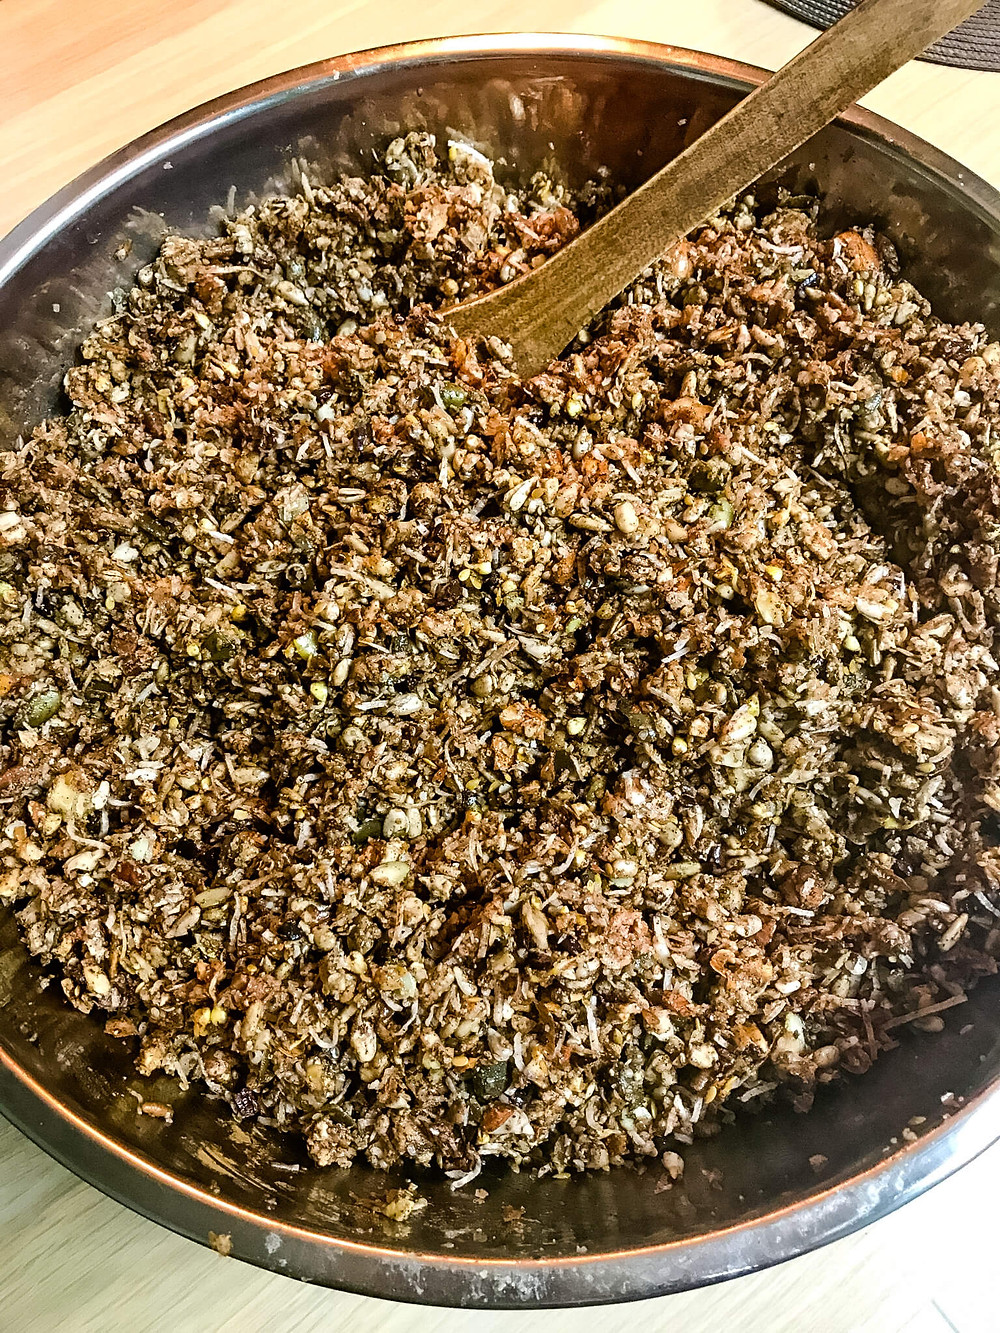 Making Homemade Low Carb Granola